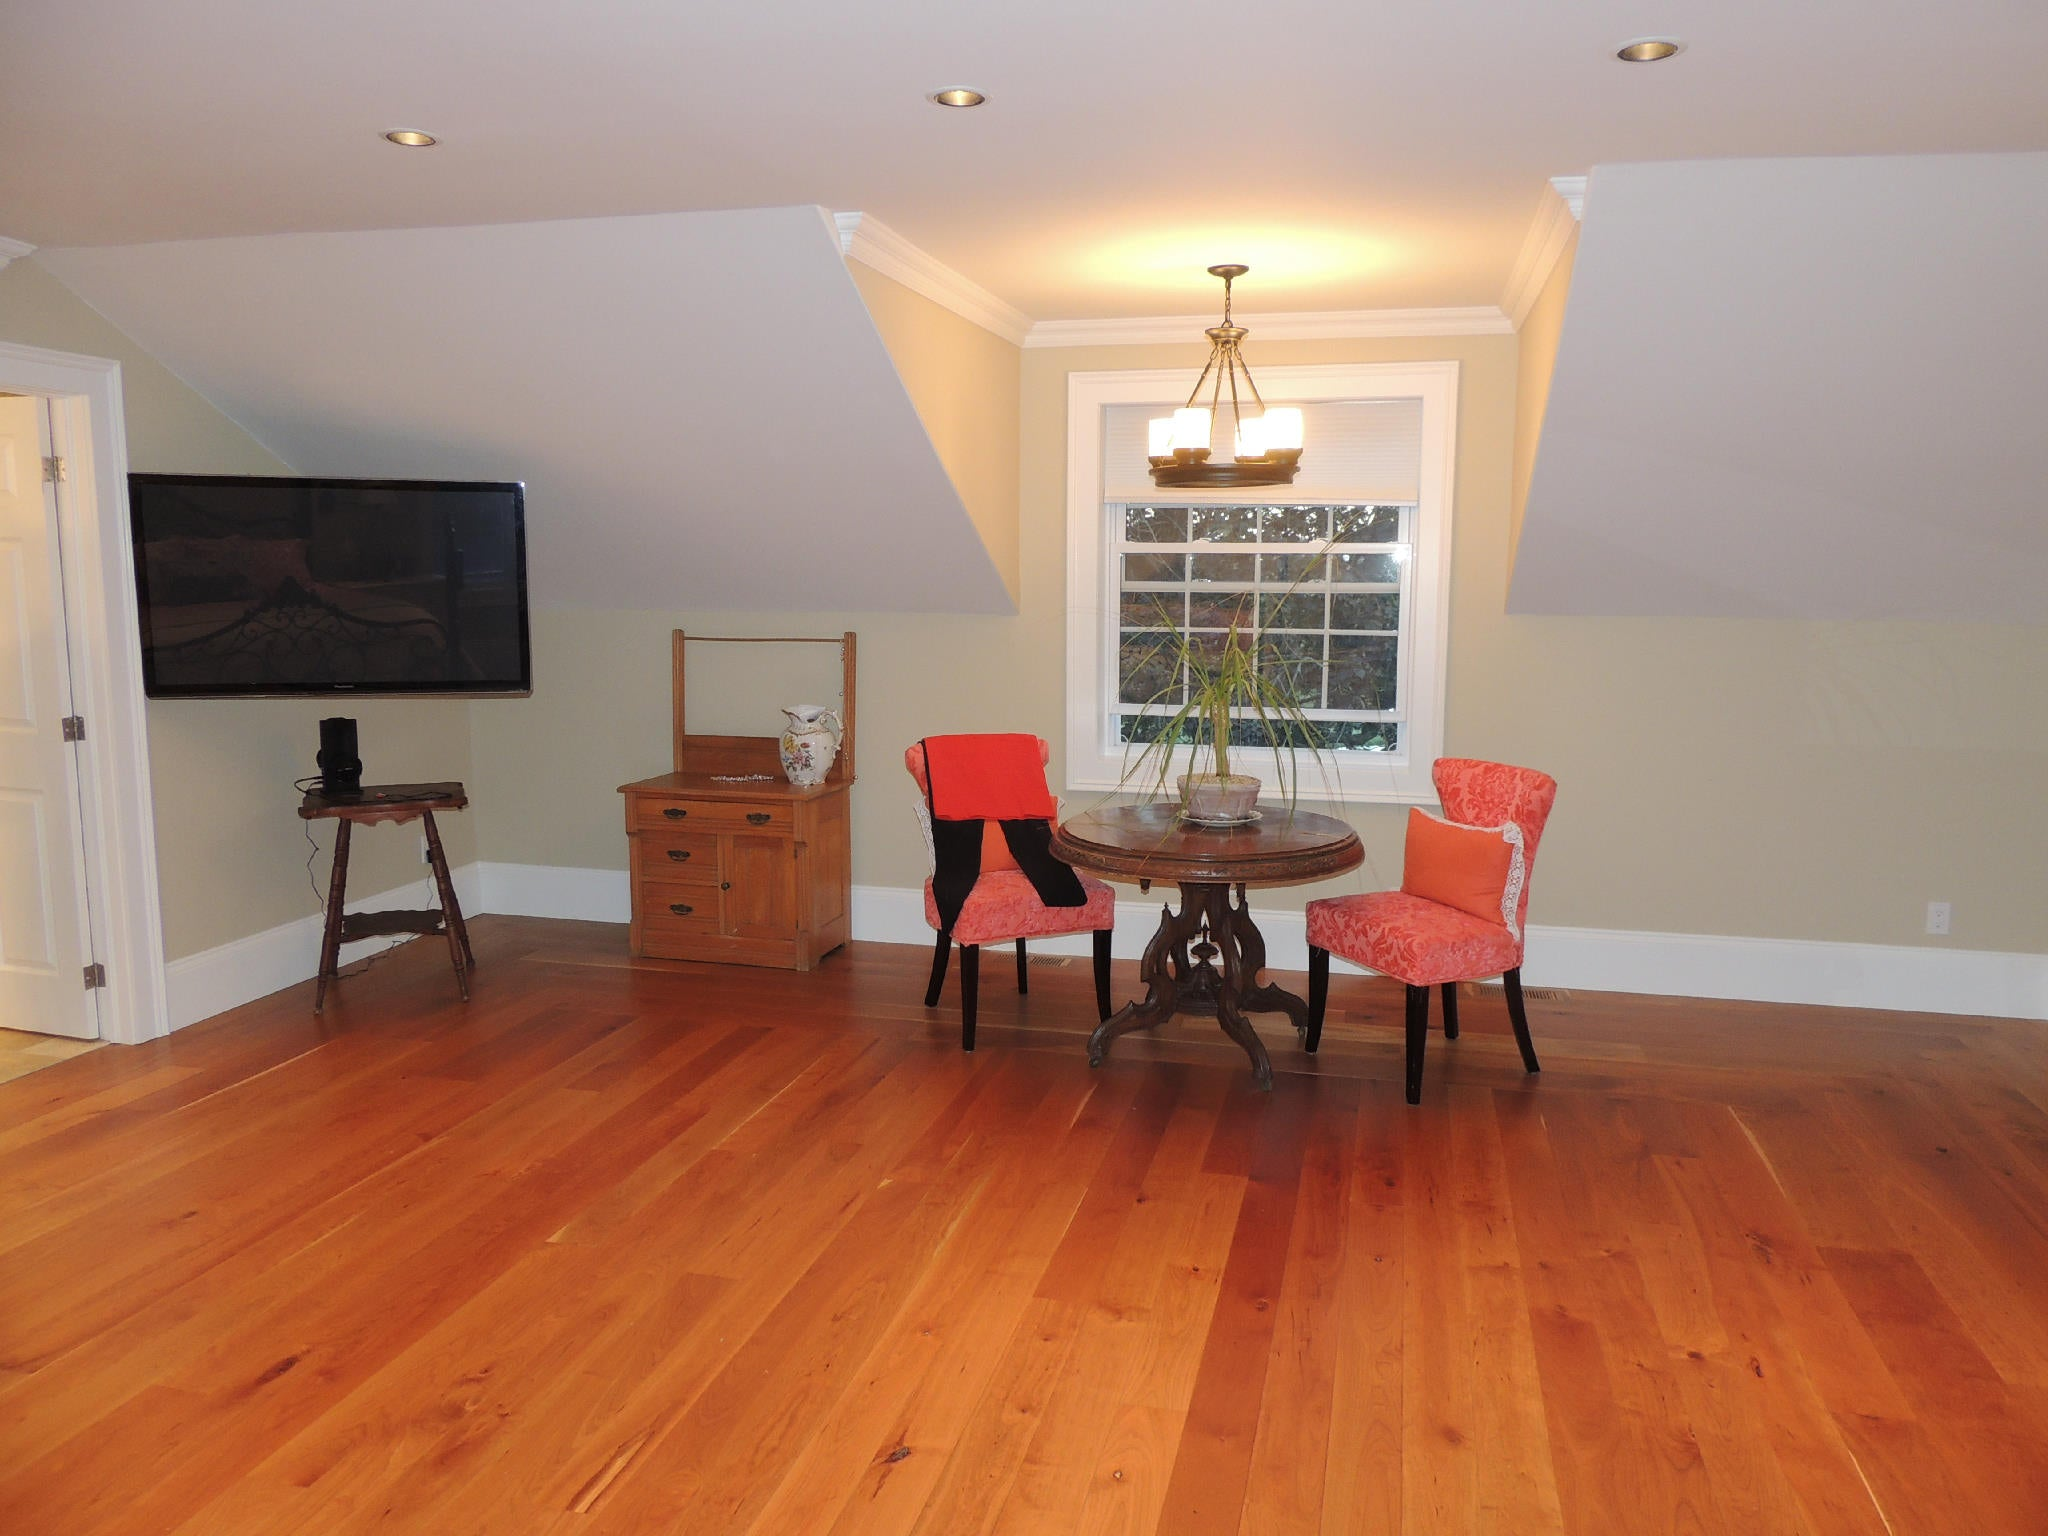 Hardwood Flooring Thats Cherry Wood